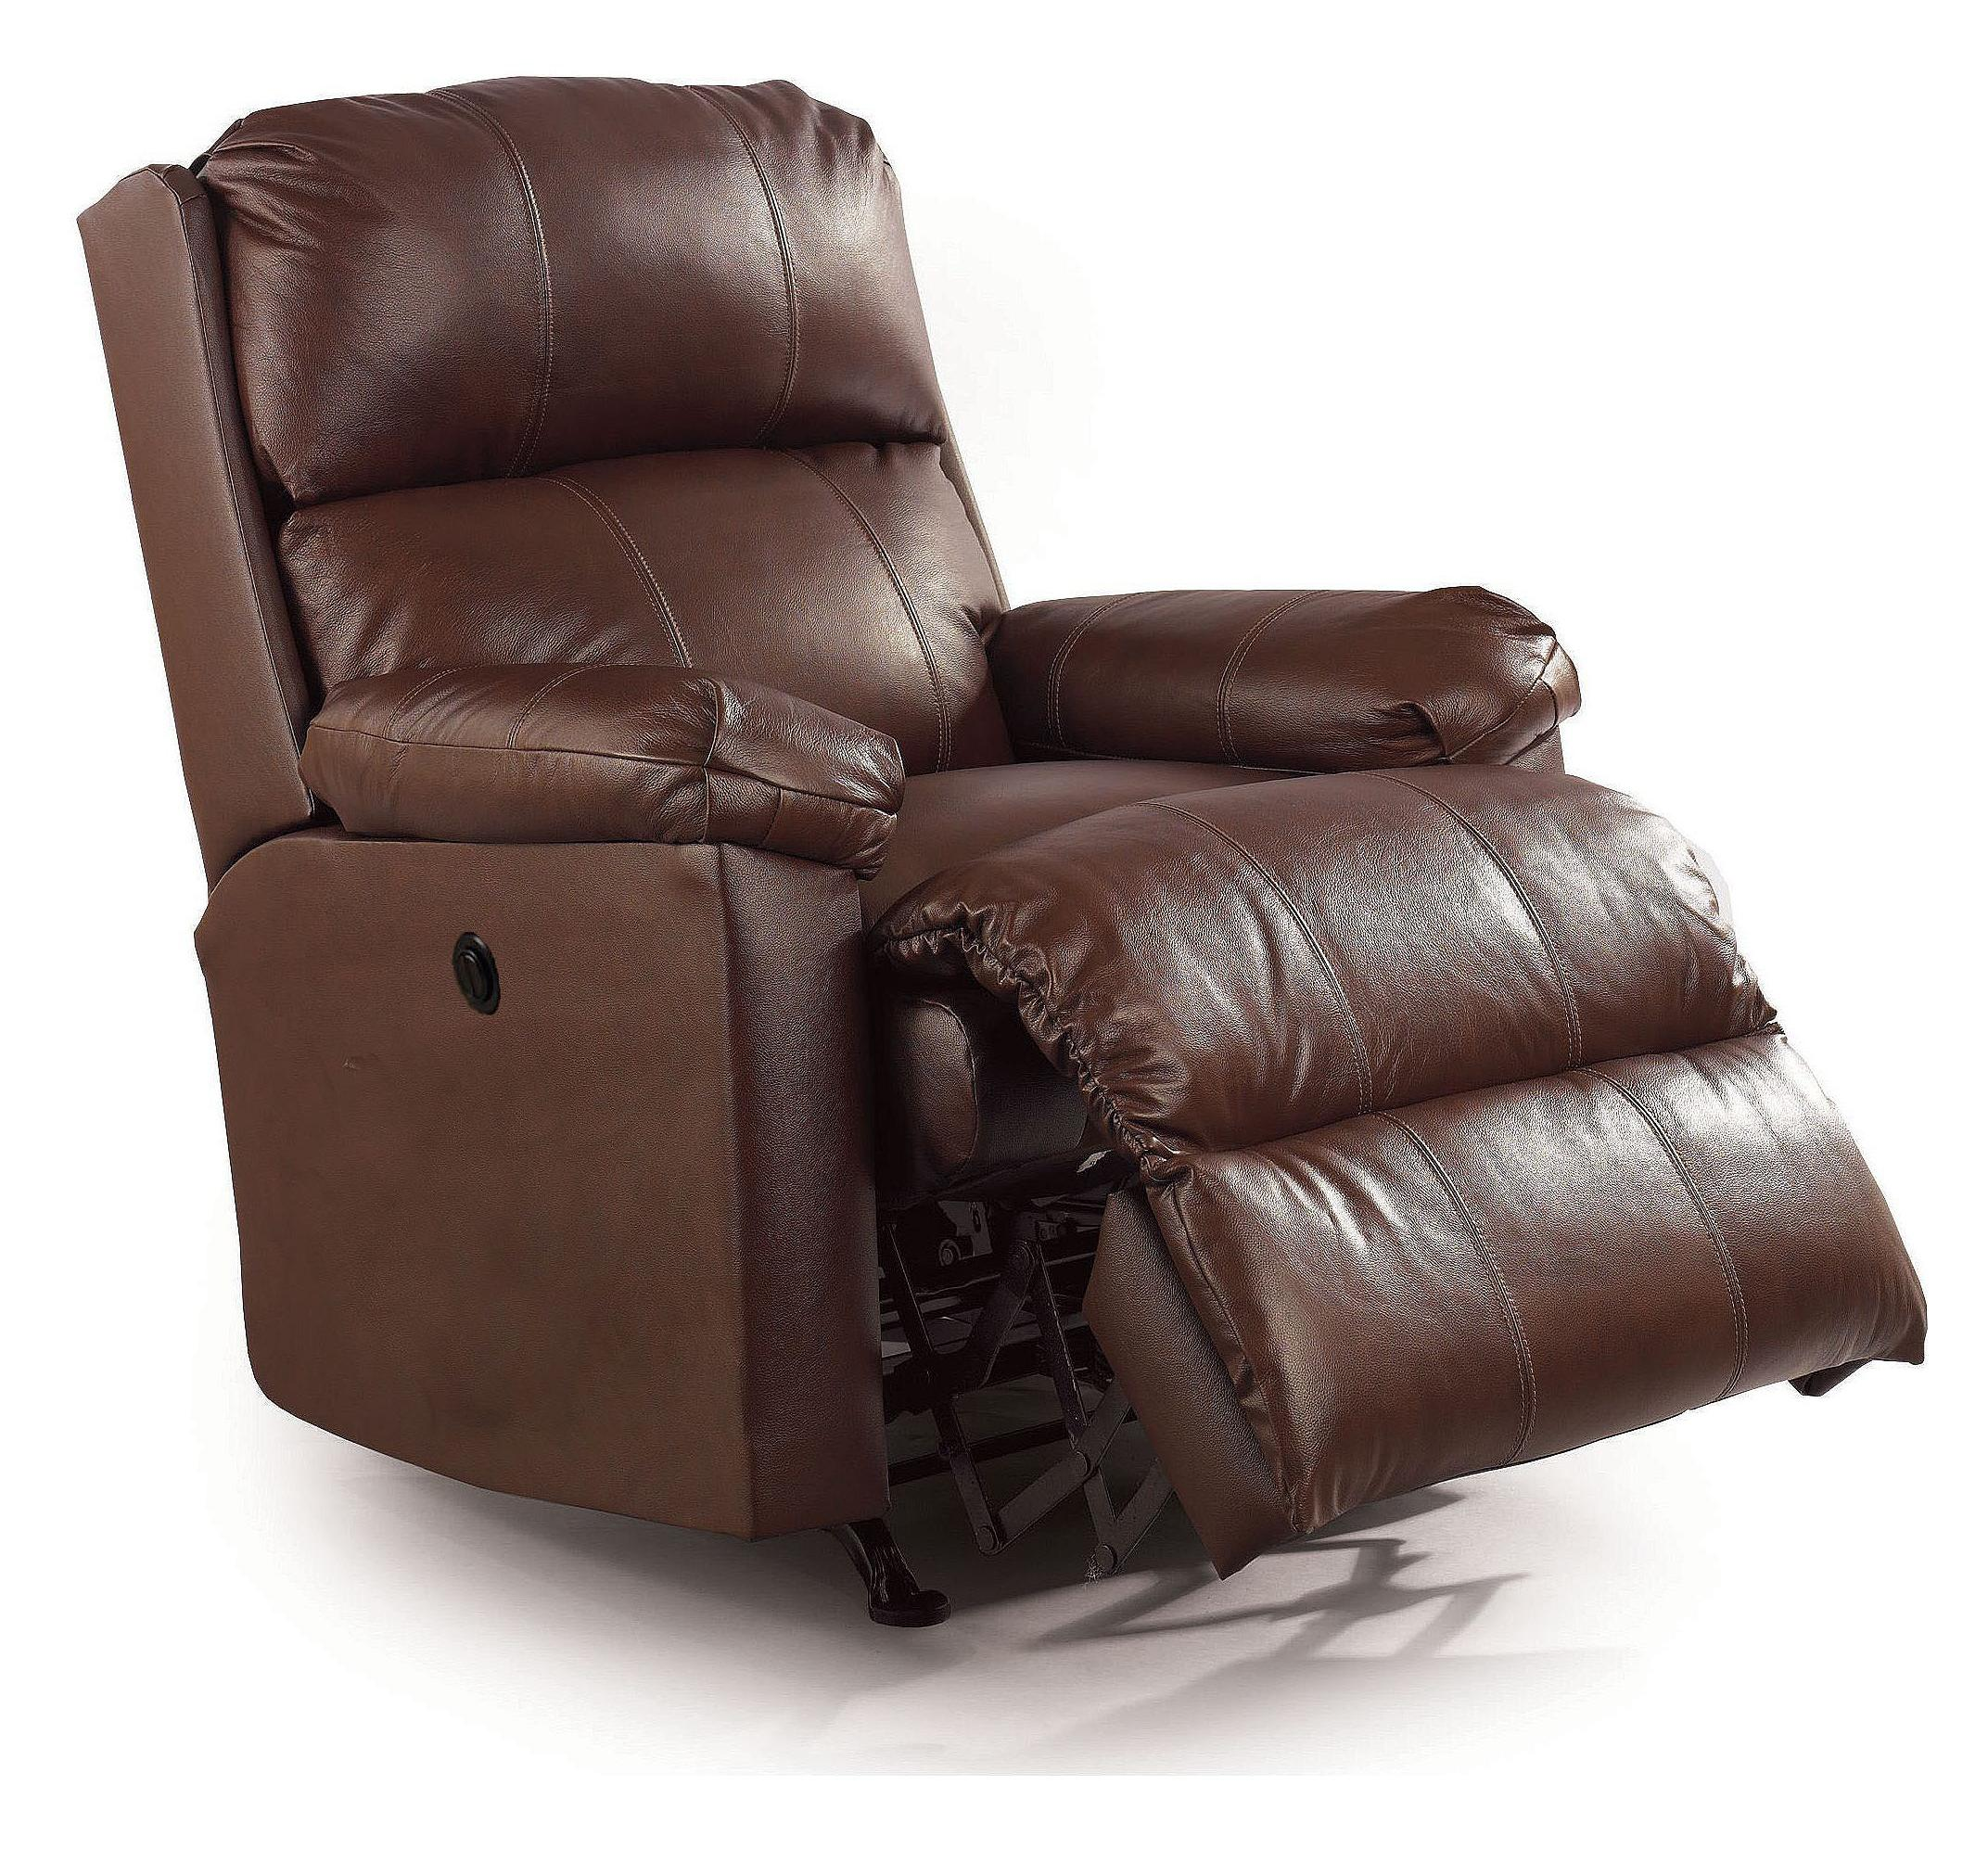 Lane timeless casual pad over chaise rocker recliner for Bulldog pad over chaise rocker recliner